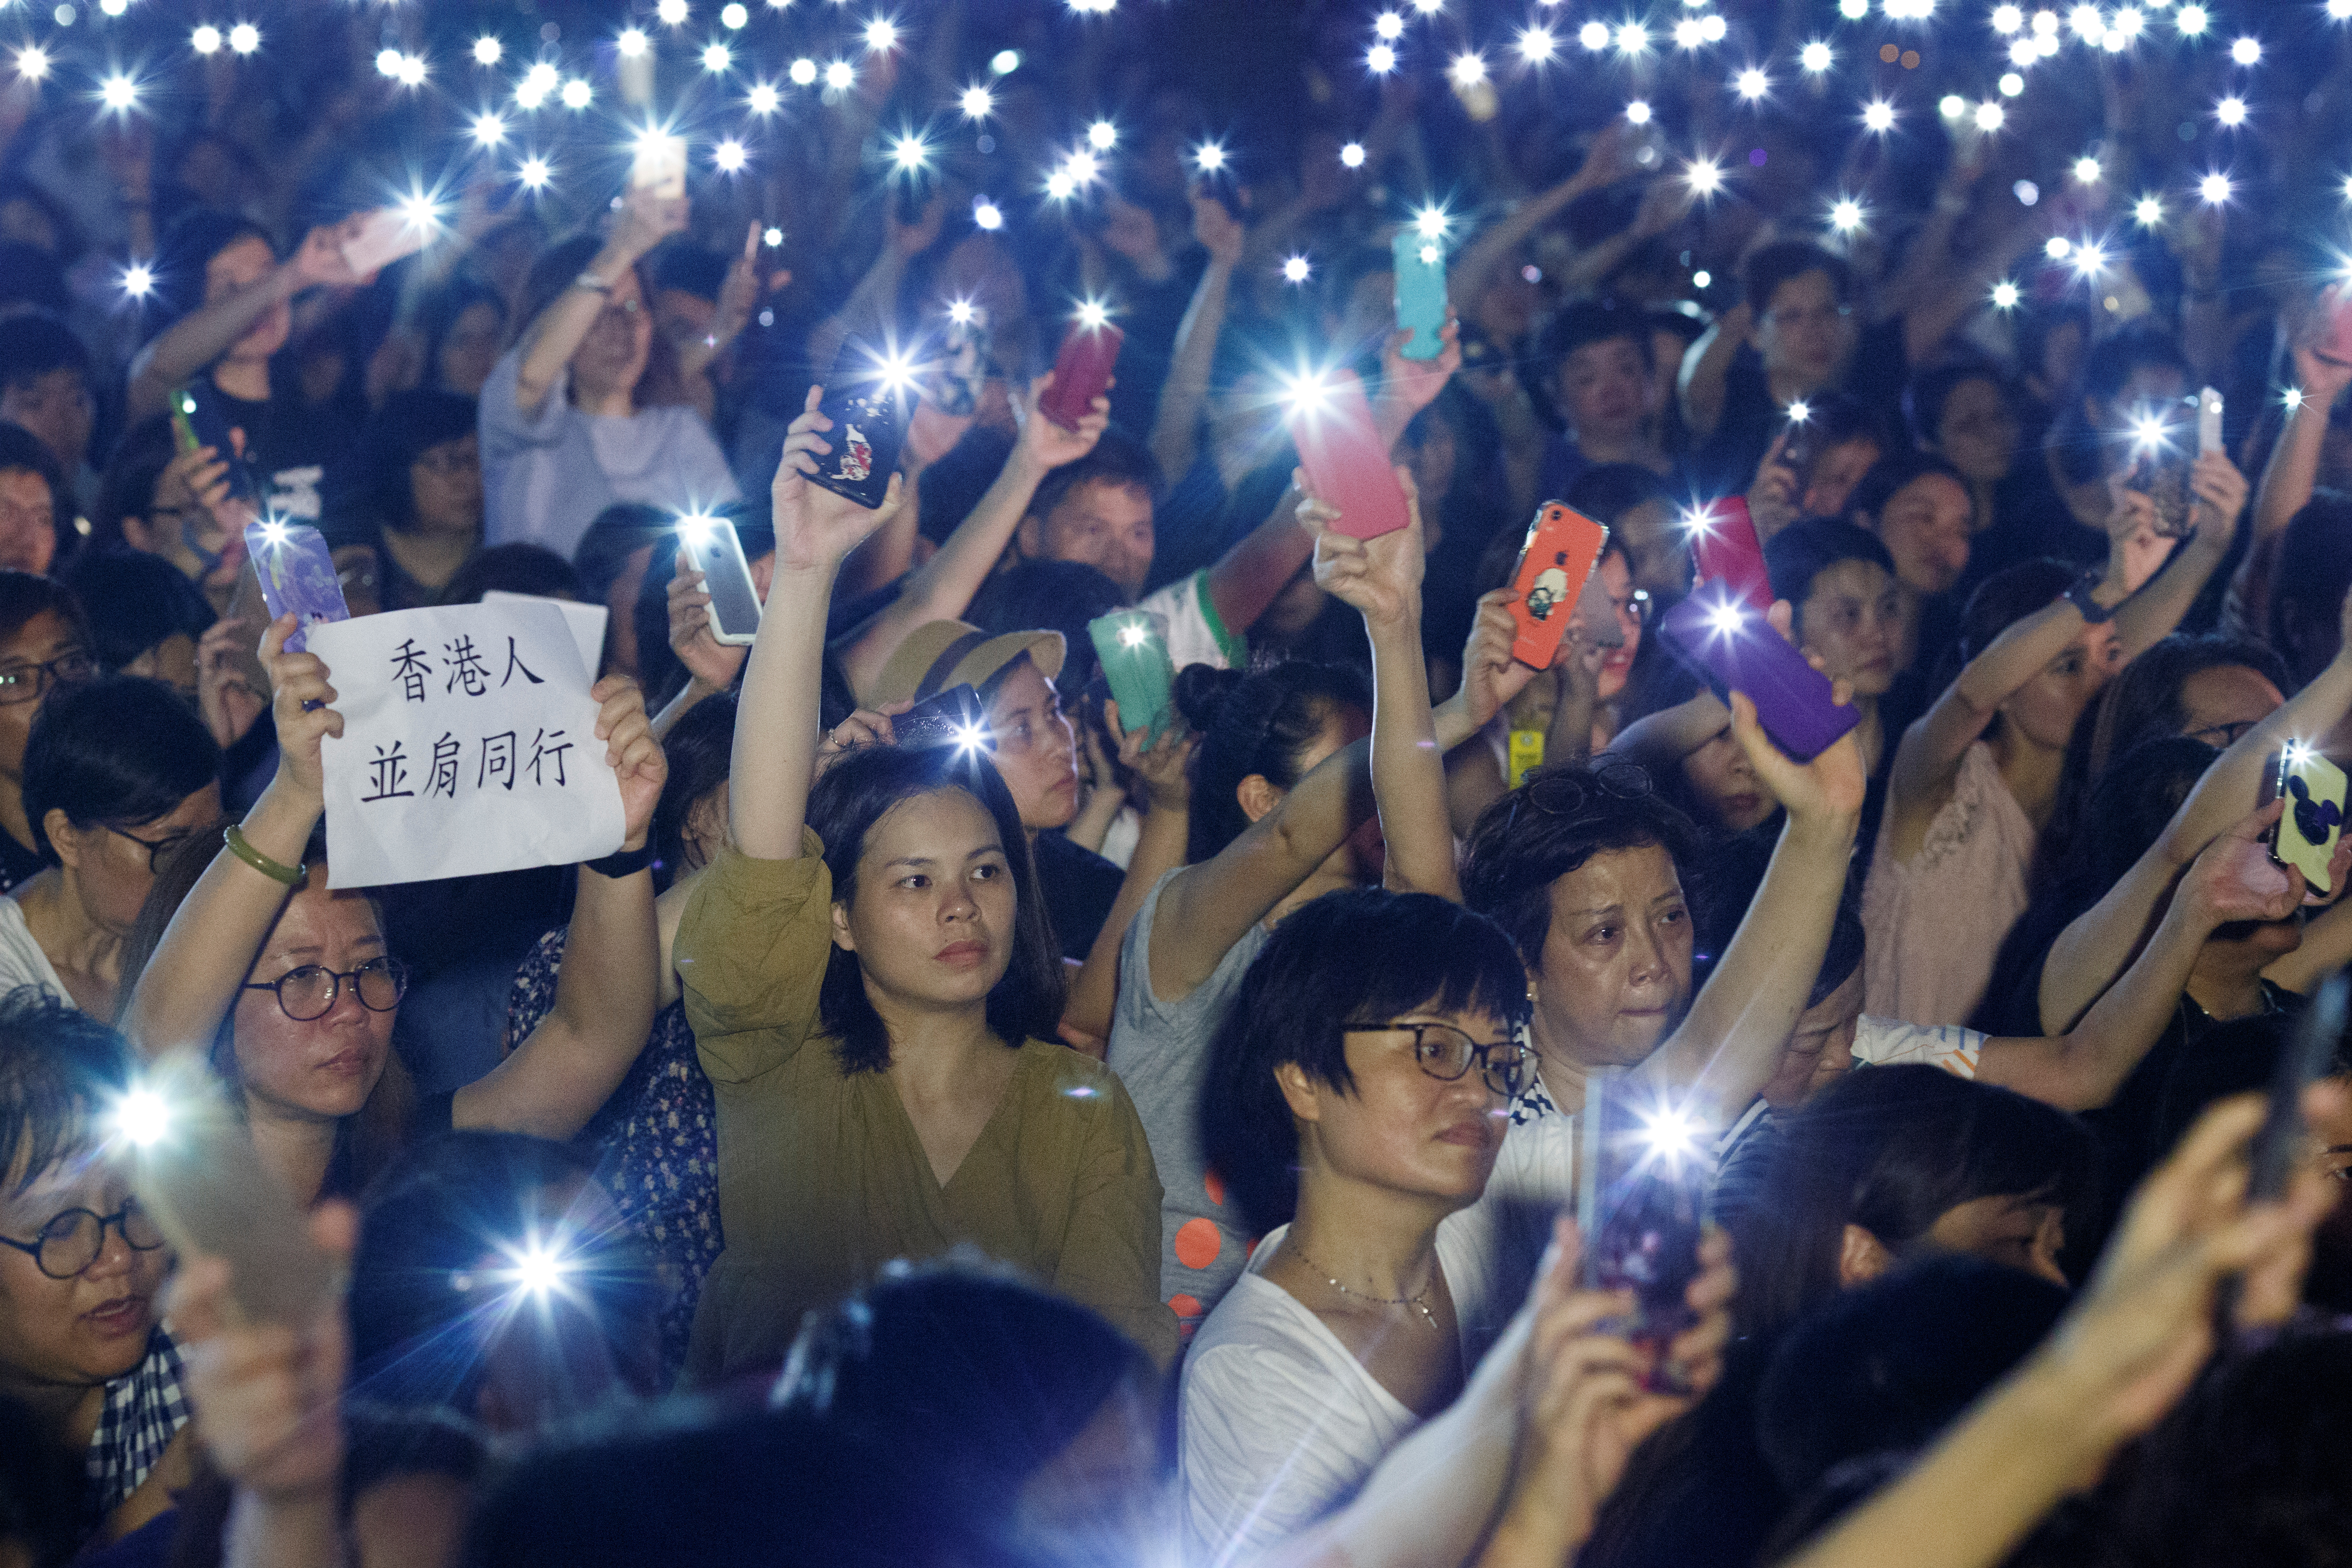 People wave flashlights during a gathering of Hong Kong mothers to show their support for the city's young pro-democracy protesters in Hong Kong, China July 5, 2019. REUTERS/Thomas Pet